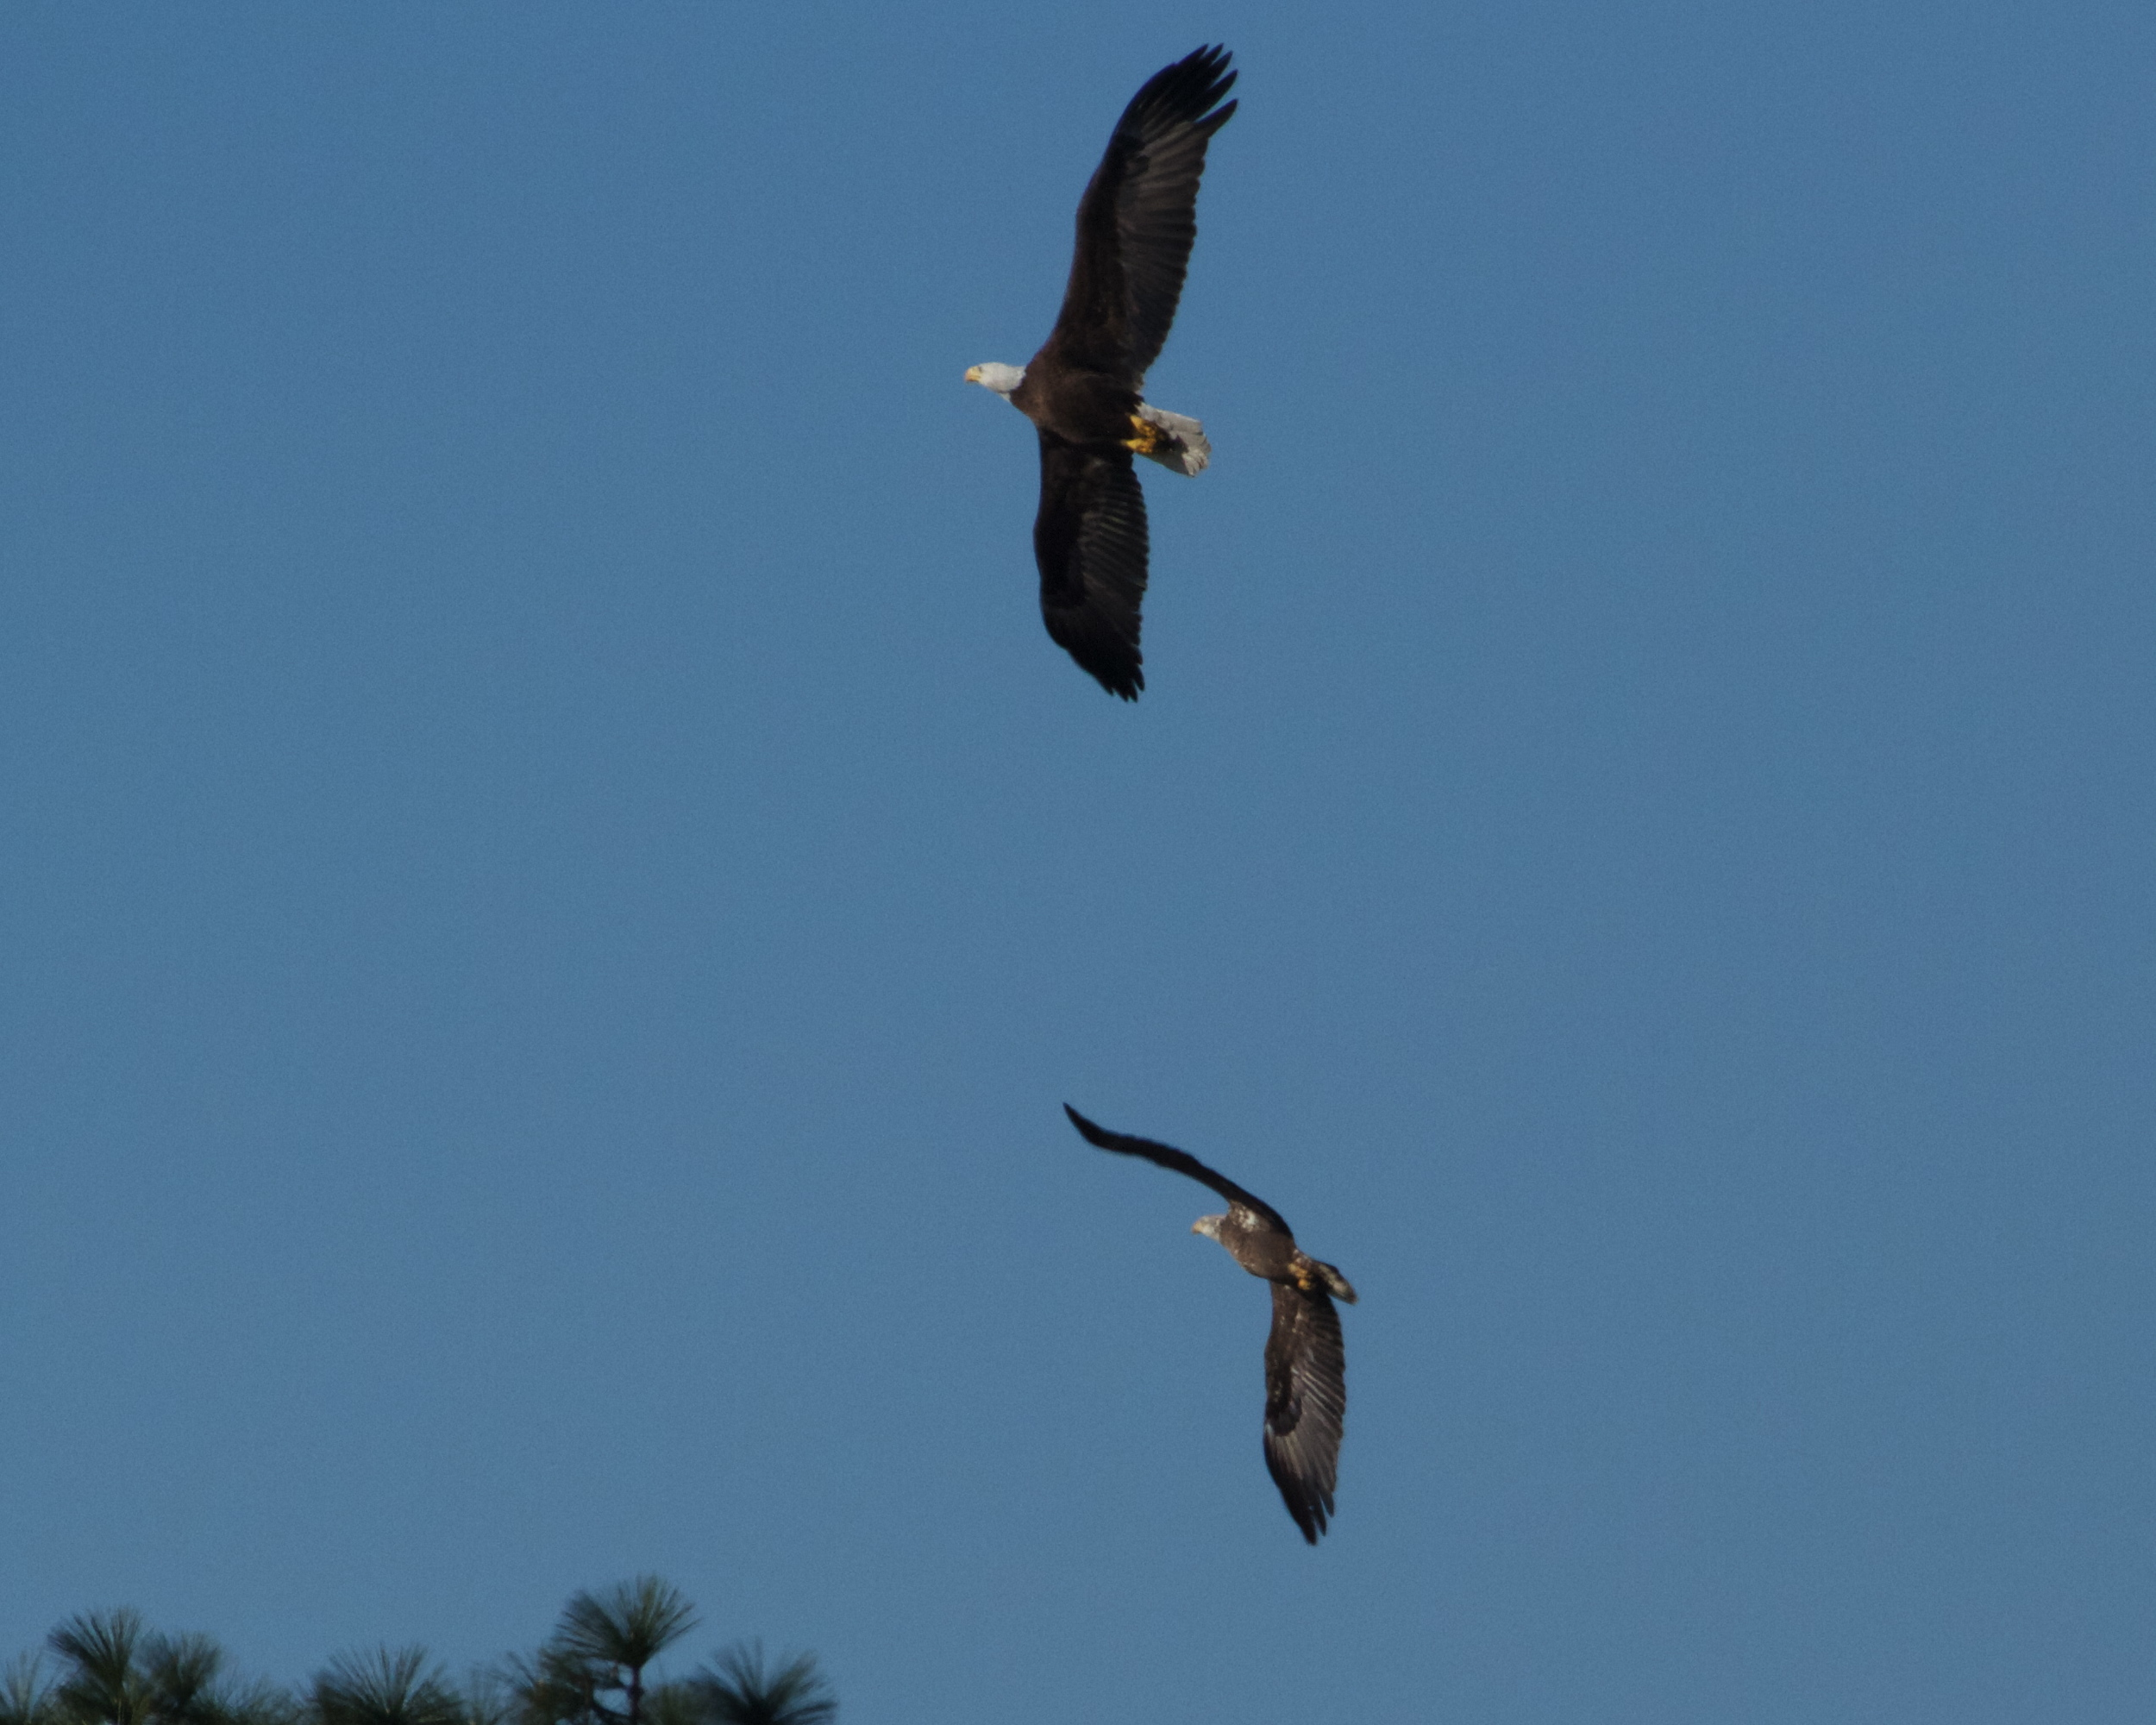 An adult Bald Eagle and Juvenile practice aerobatic maneuvers over the Broward.